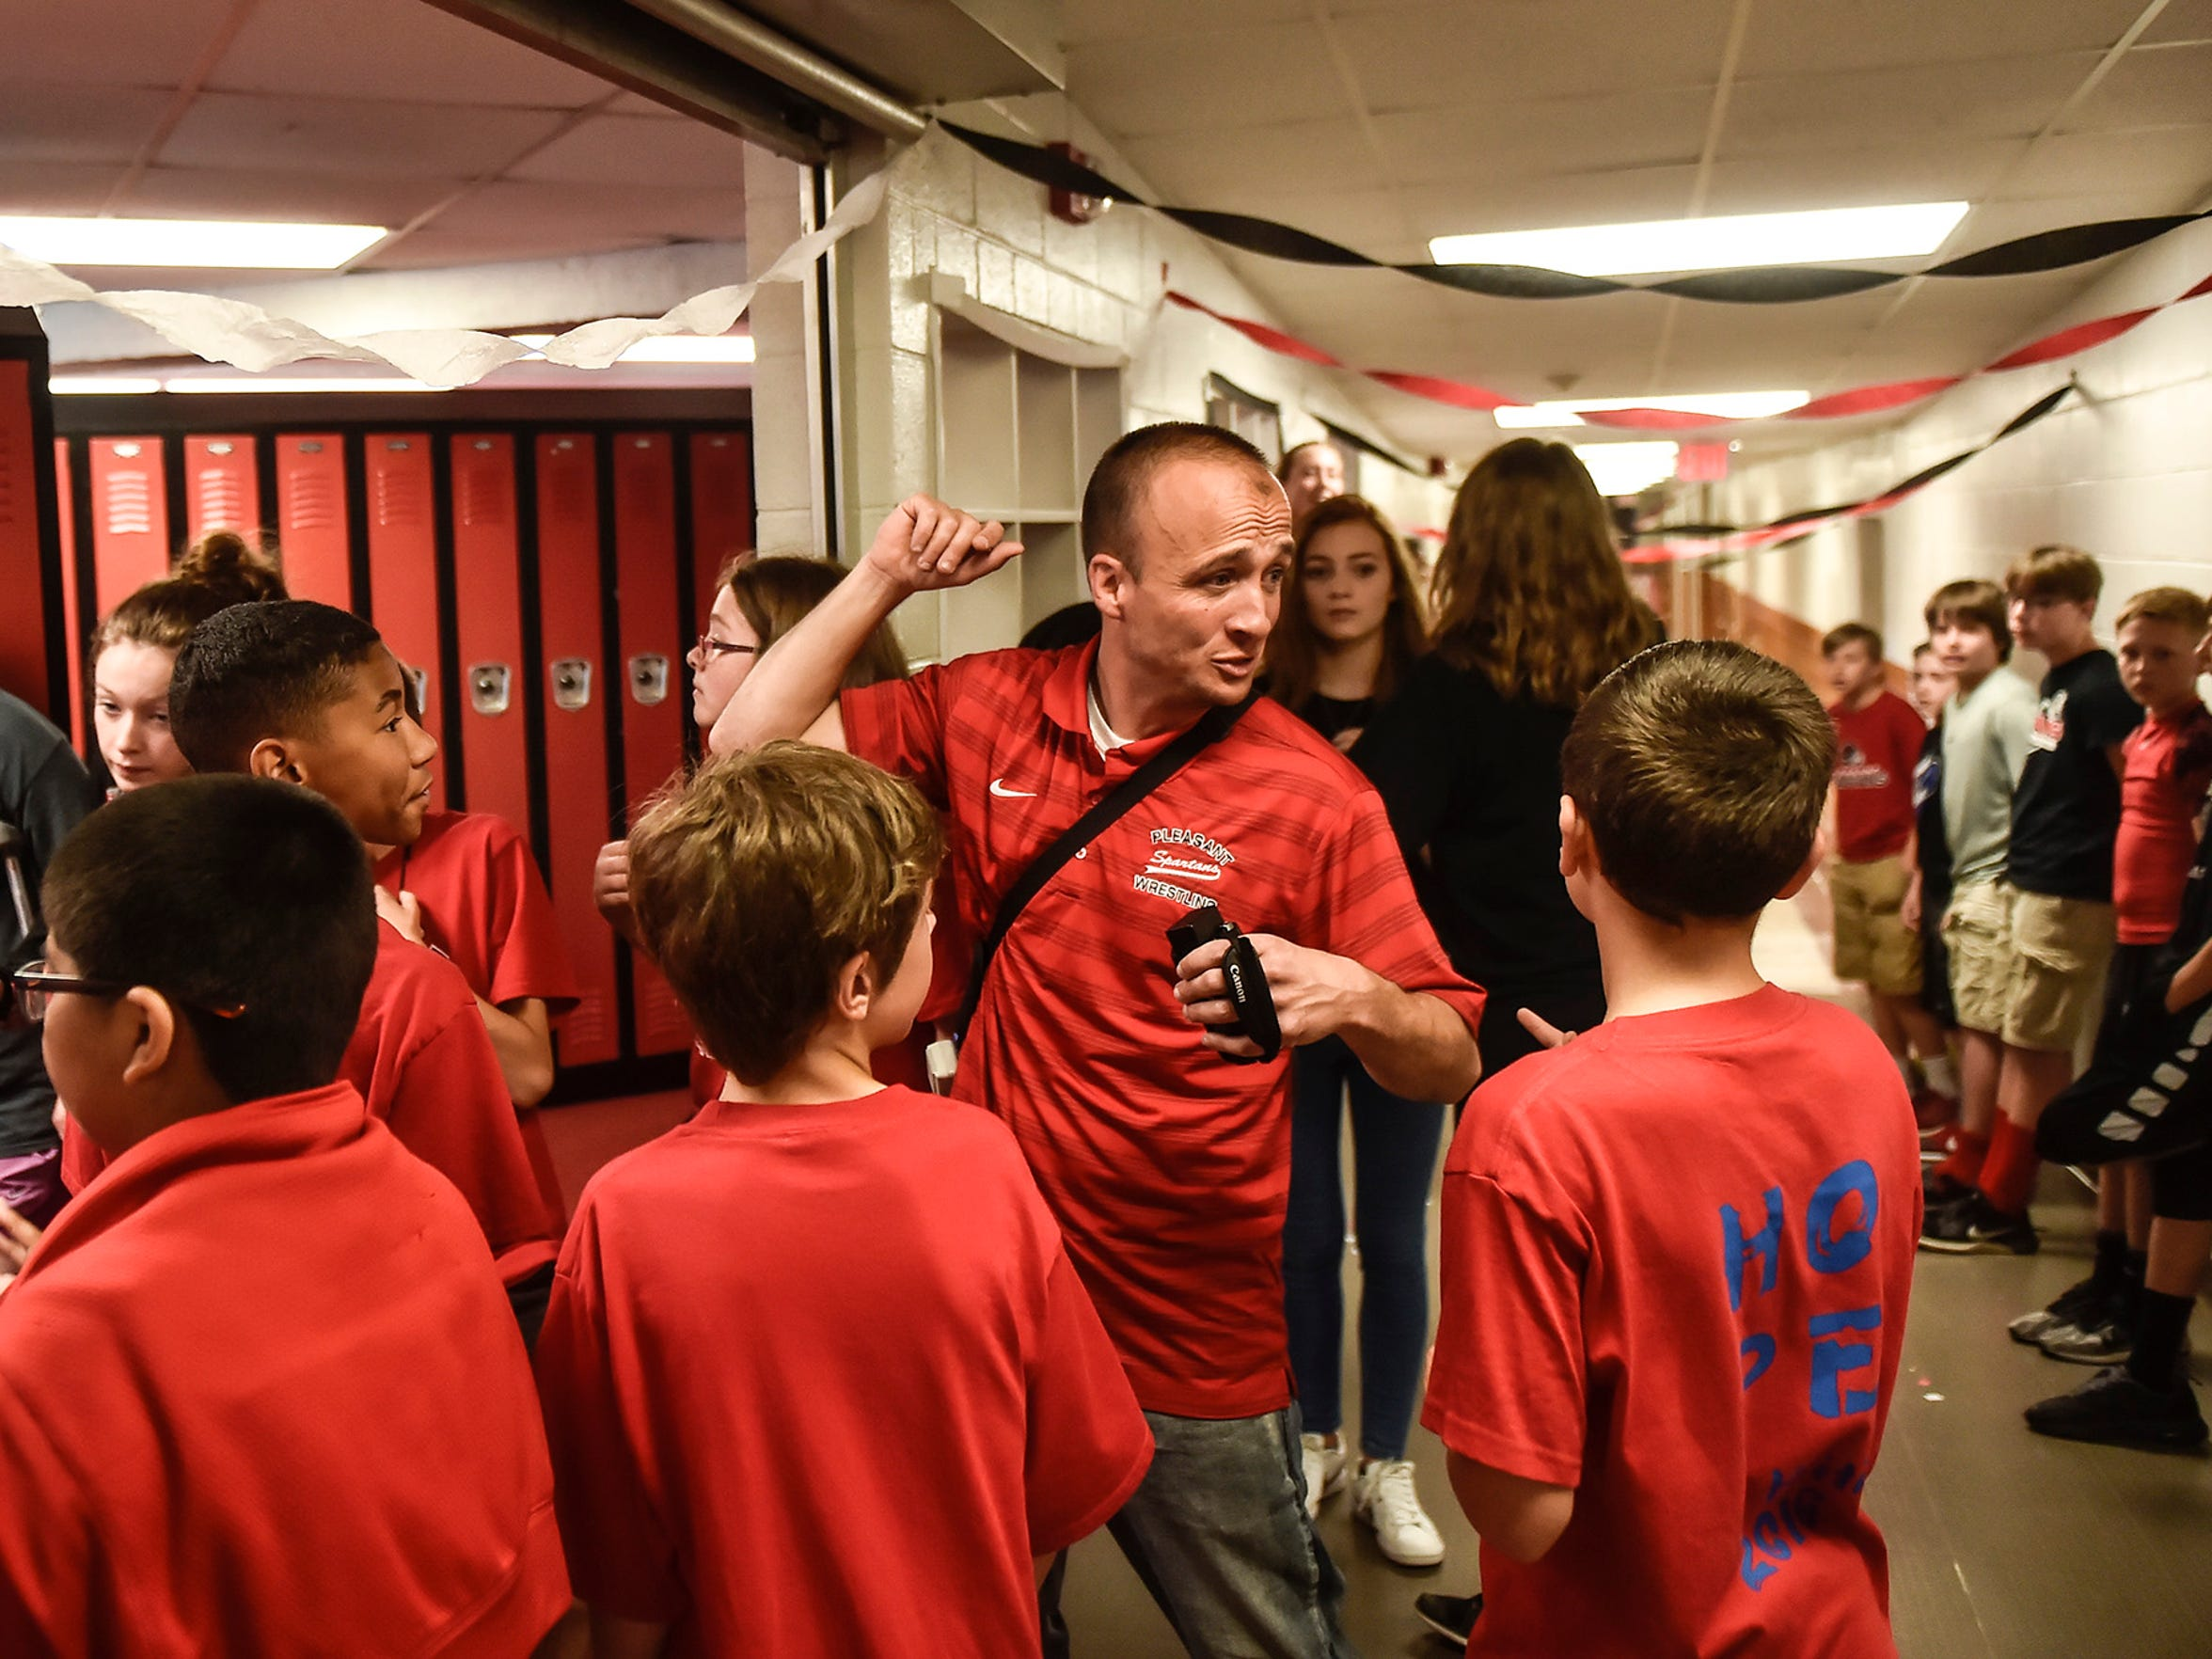 Joe Robinson, a seventh-grade social studies teacher at Pleasant Middle School, directs students during the filming of a lip dub video celebrating the 100th anniversary of the middle school building.